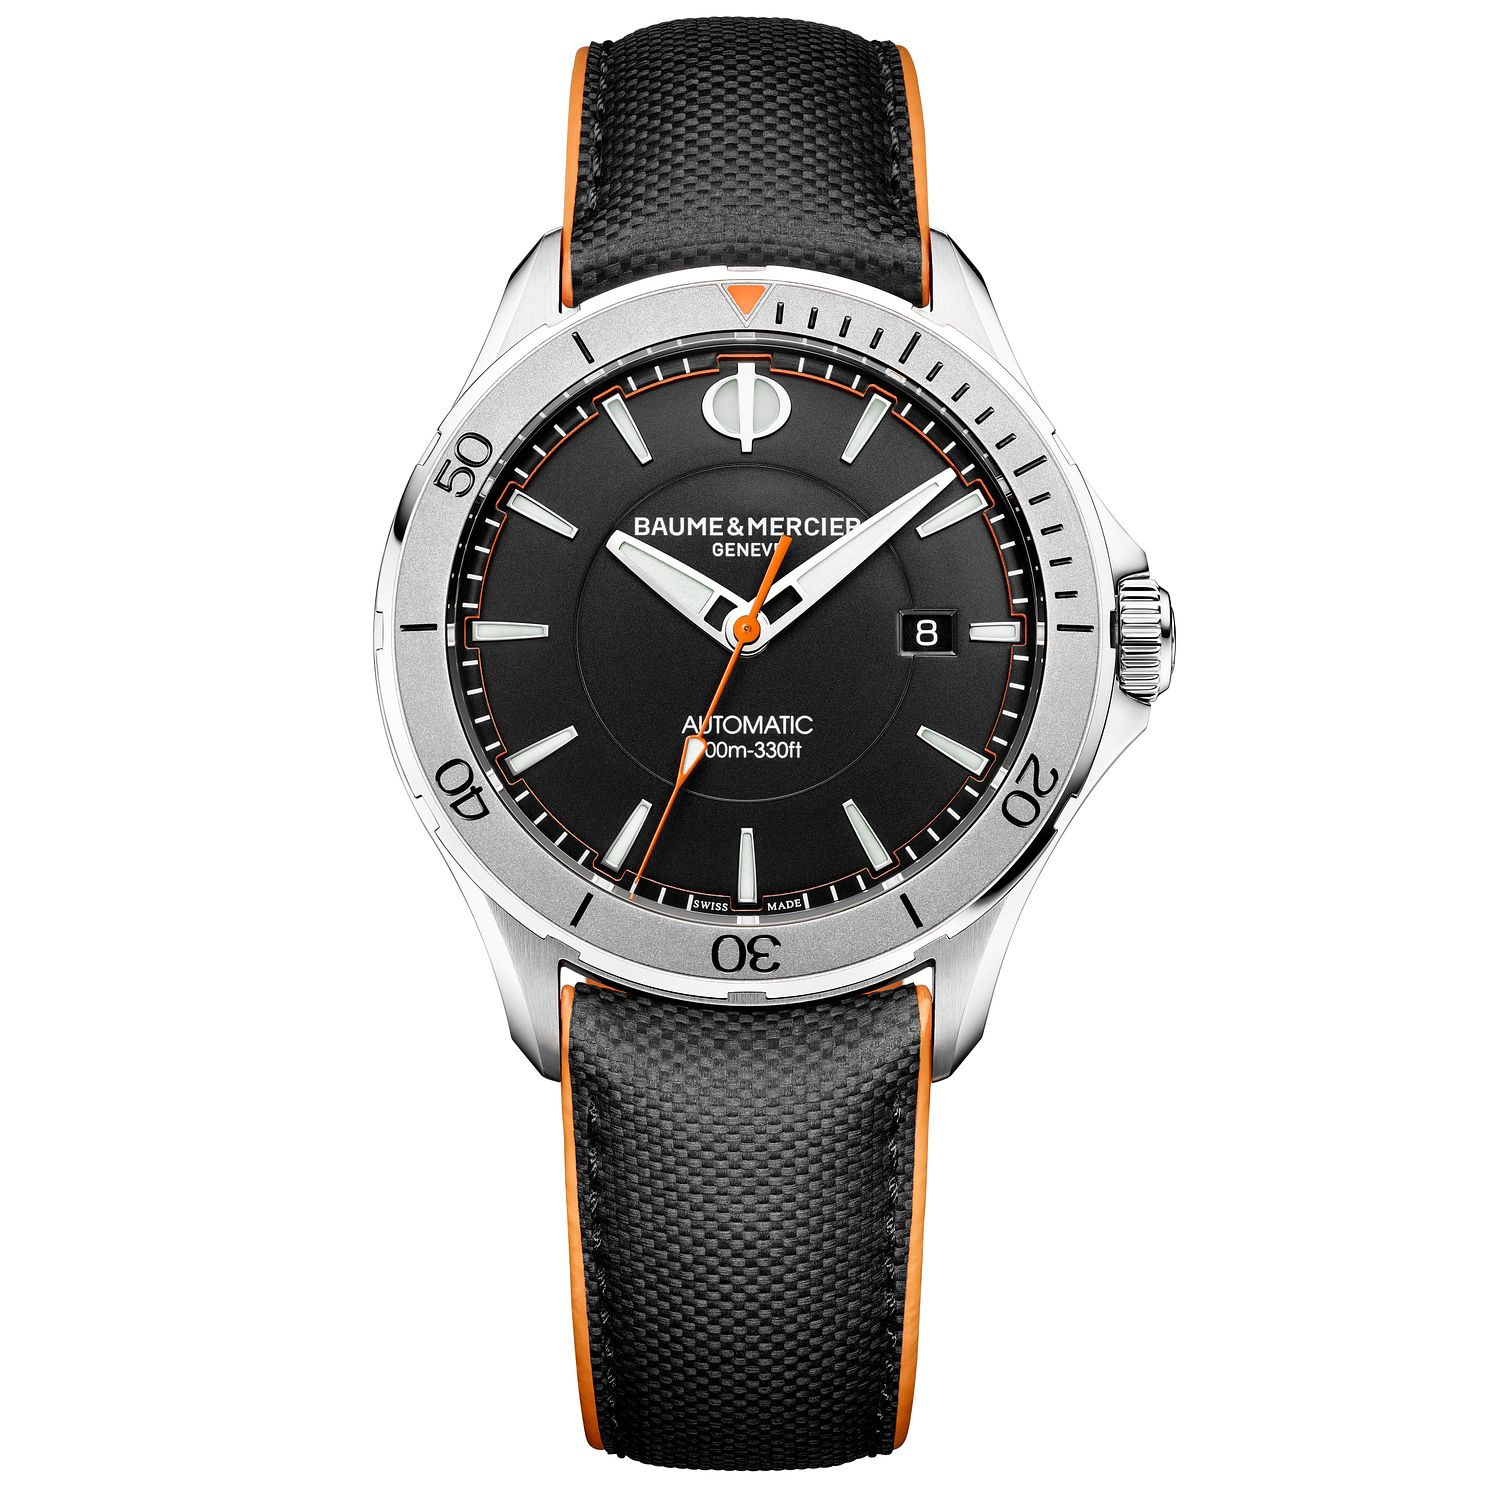 Baume & Mercier Clifton Club Men's Black Leather Strap Watch - Product number 6319114